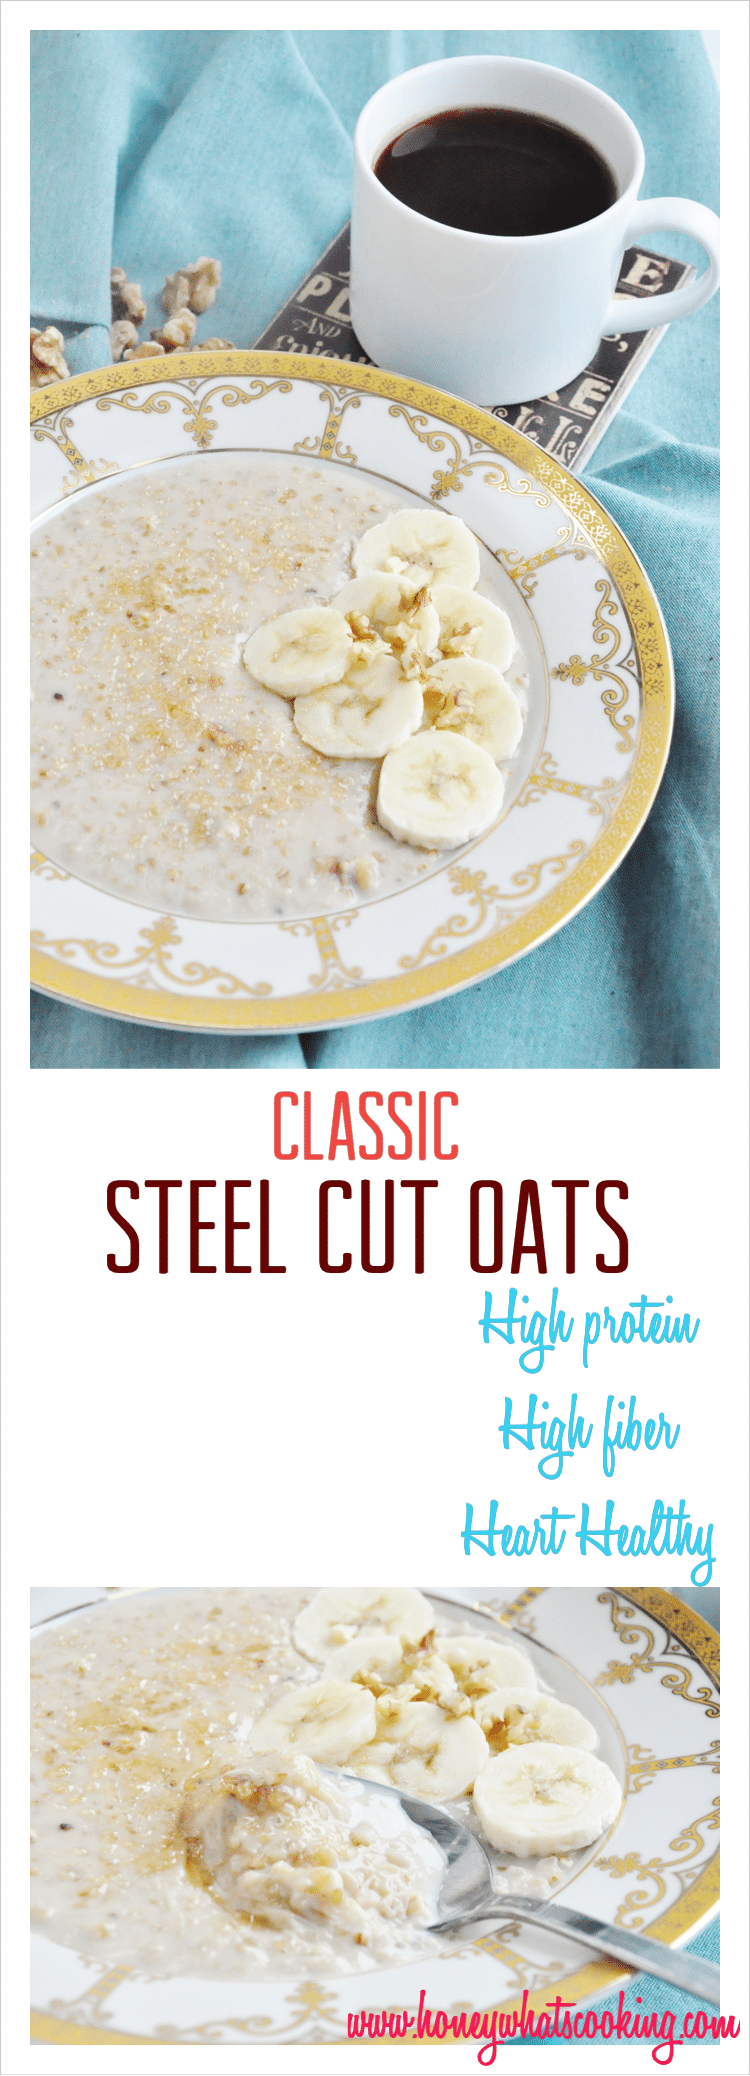 Classic Banana Walnut Steel Cut Oats pin